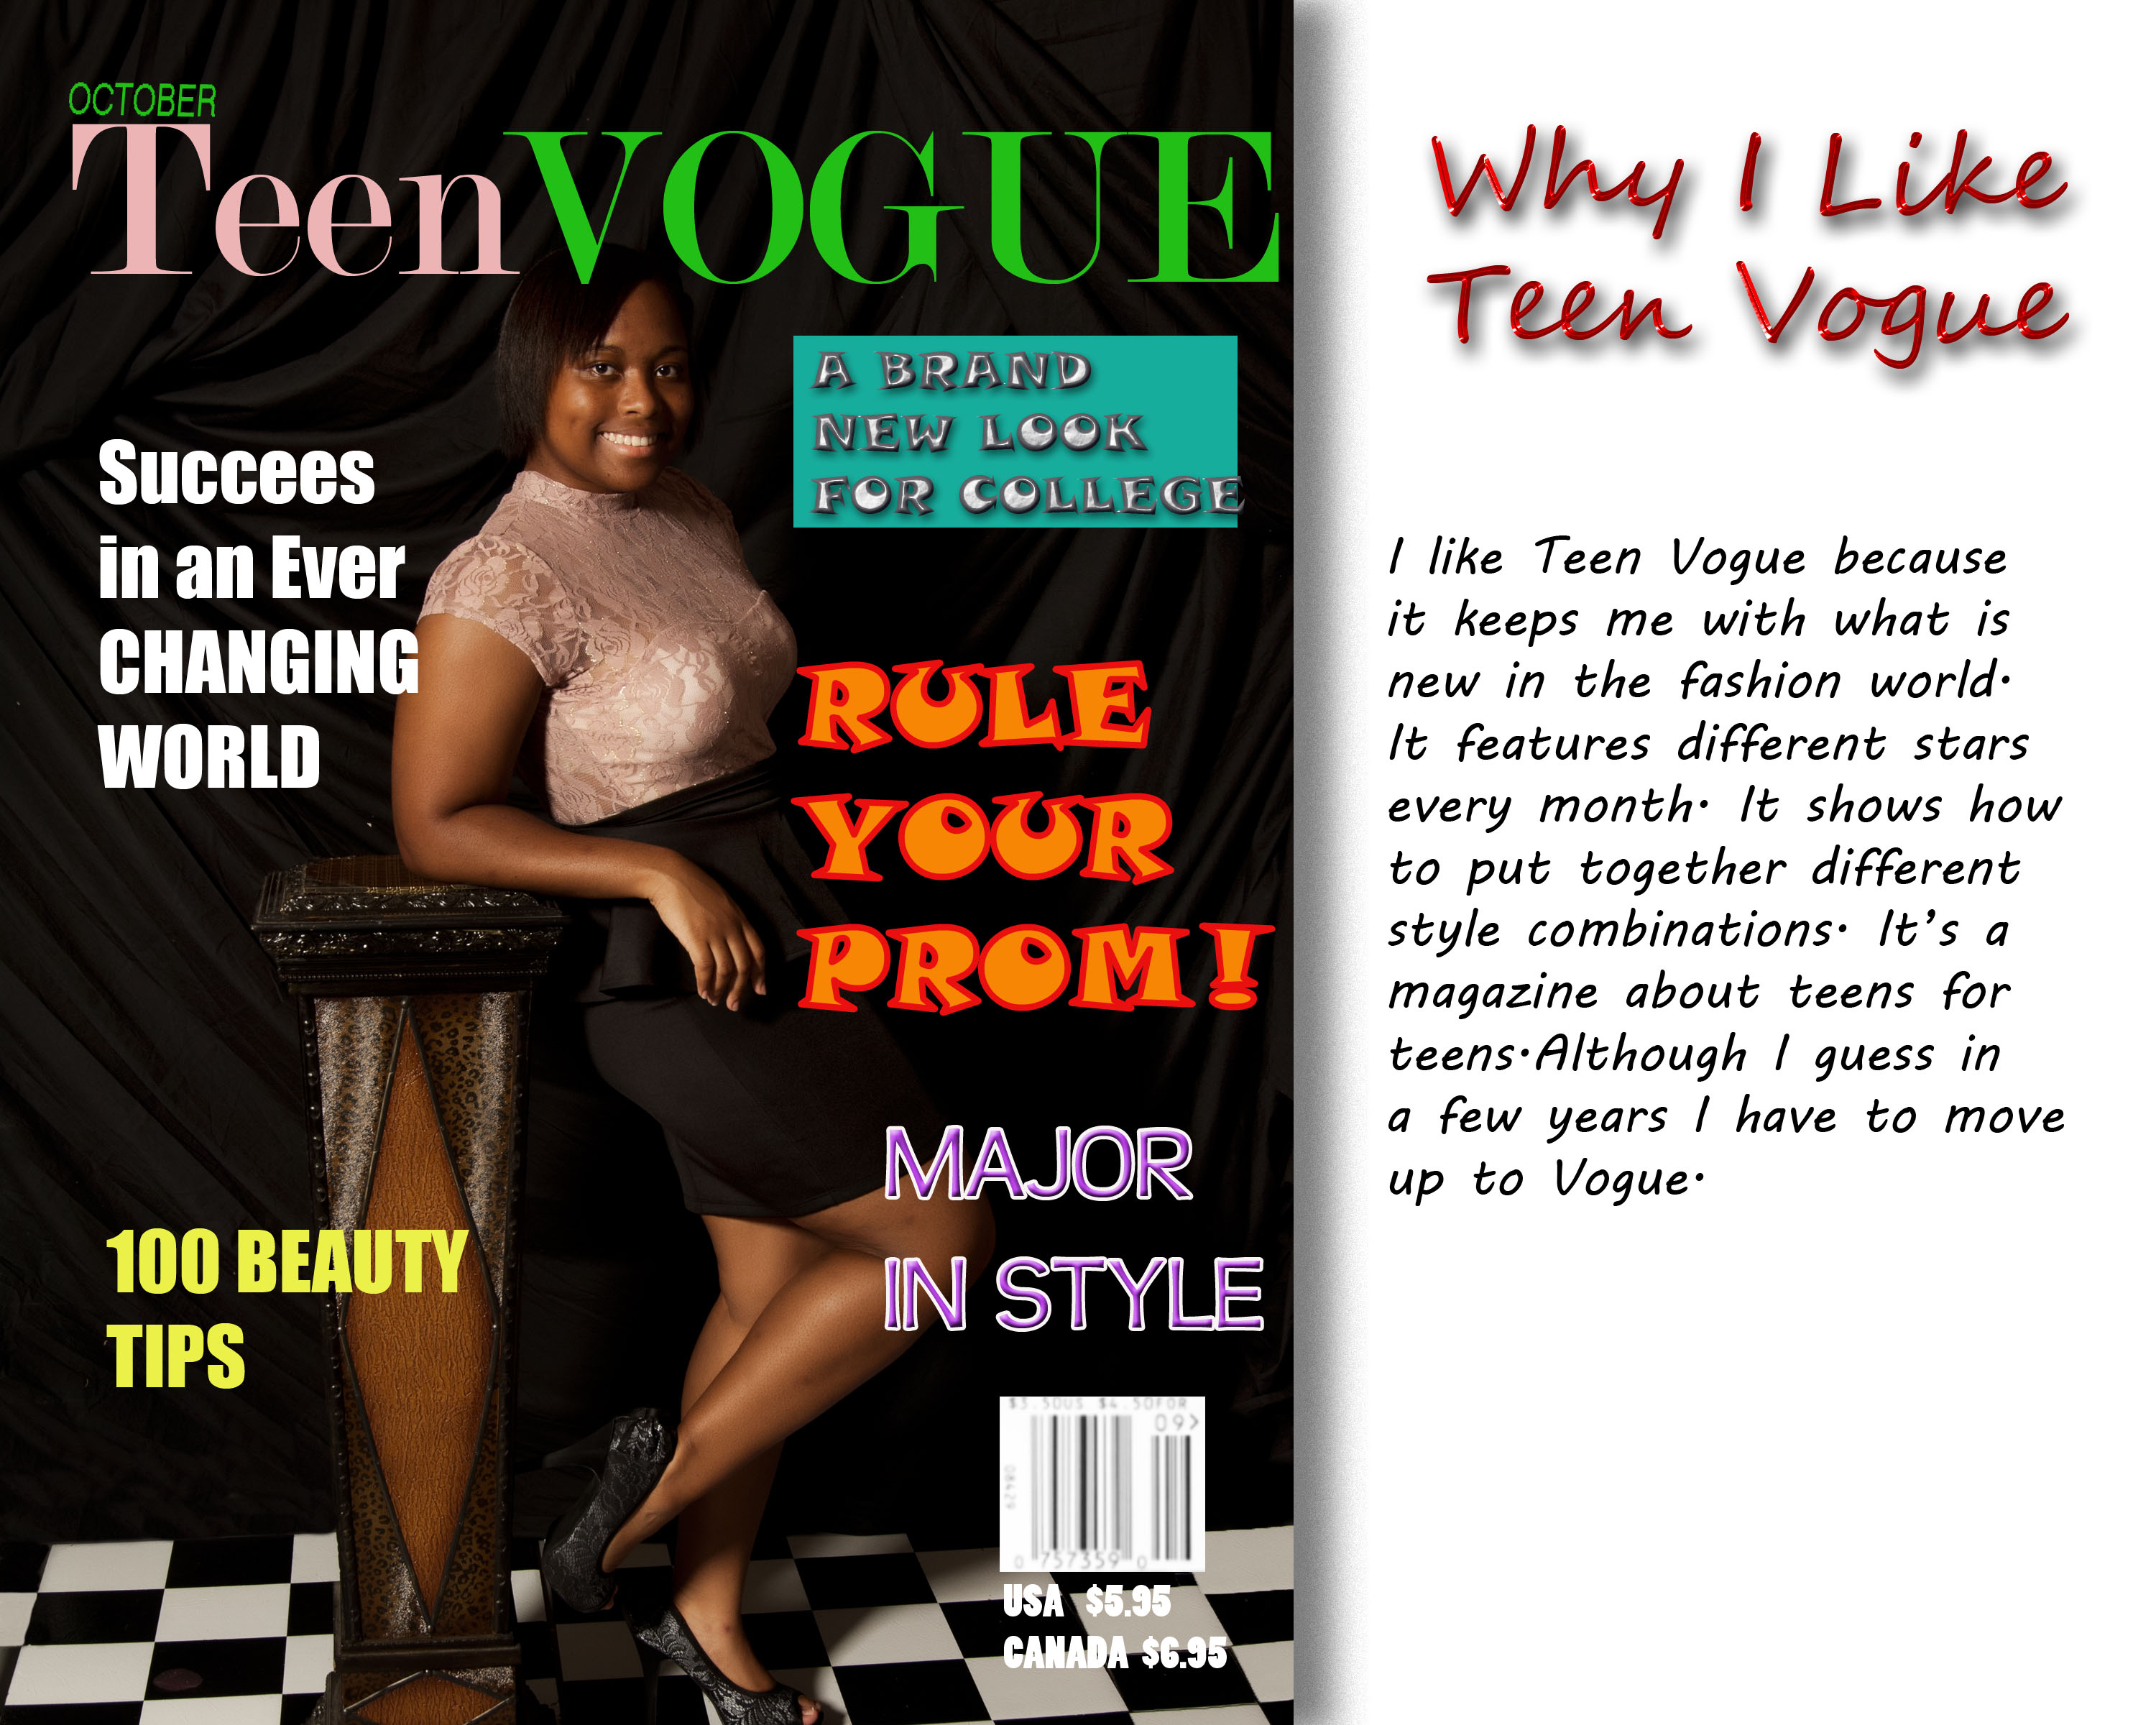 Teen Vogue Cover Page